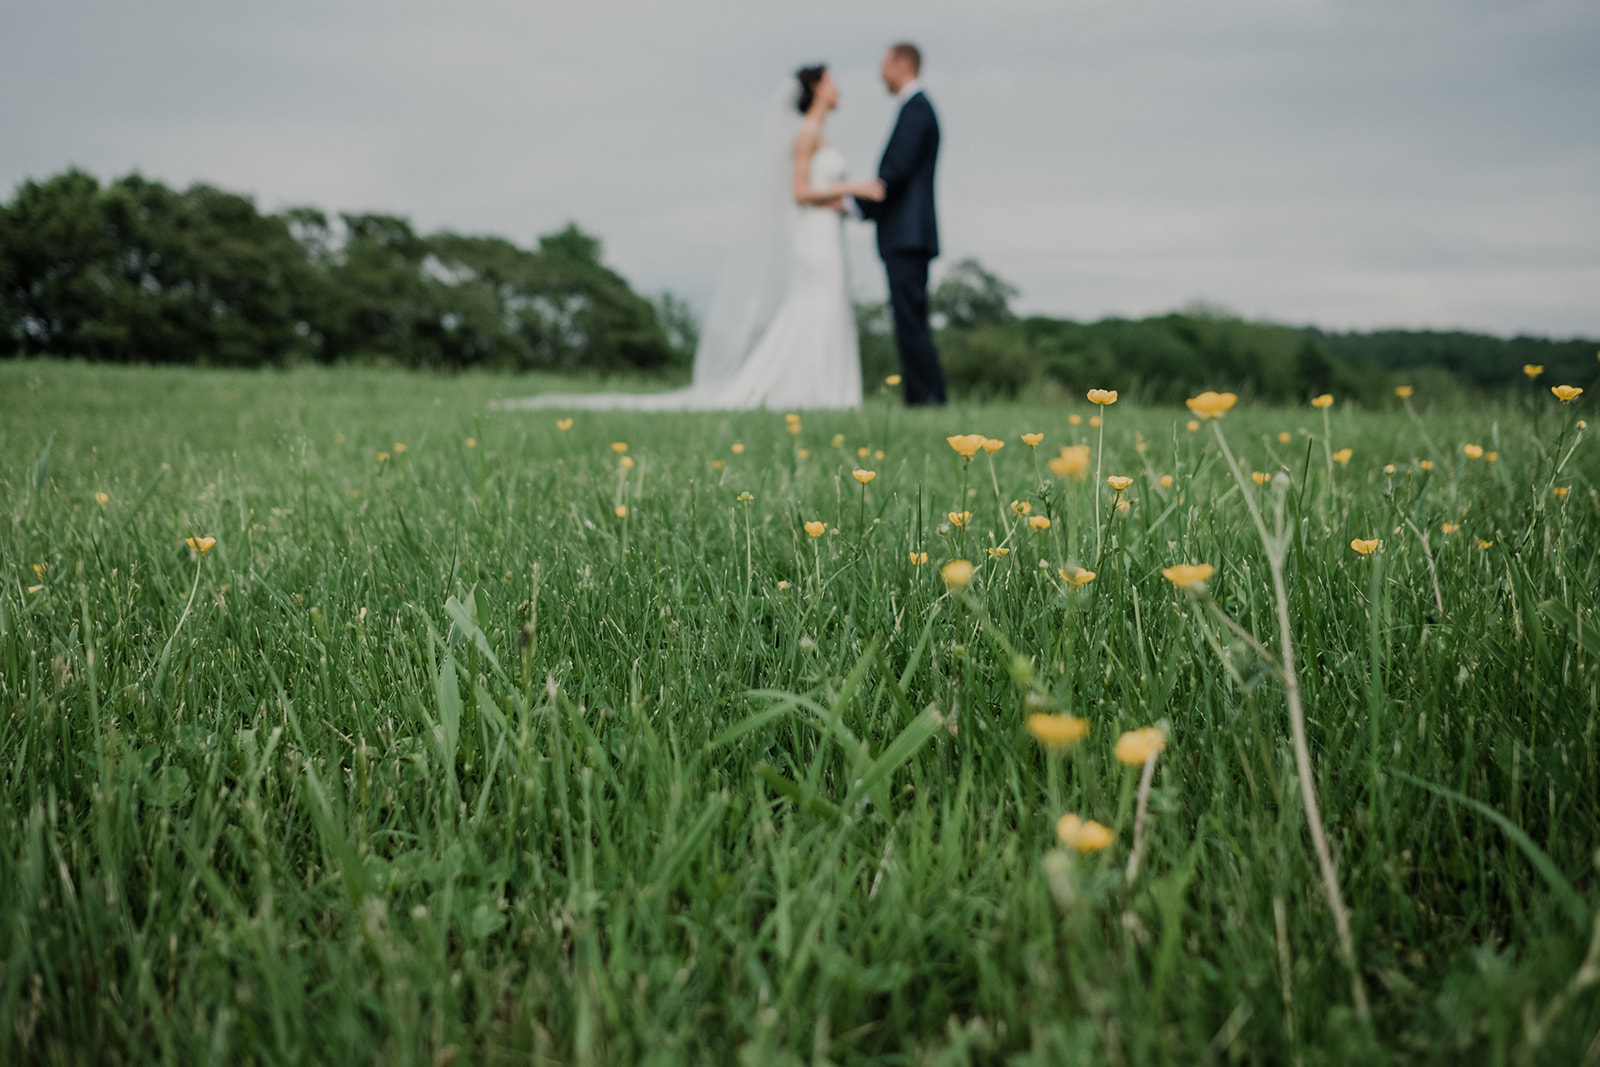 Little yellow buttercup flowers adorn the grassy field that the bride and groom are standing in during their first look before their outdoor wedding ceremony at Blue Hill Farm in Waterford, VA.